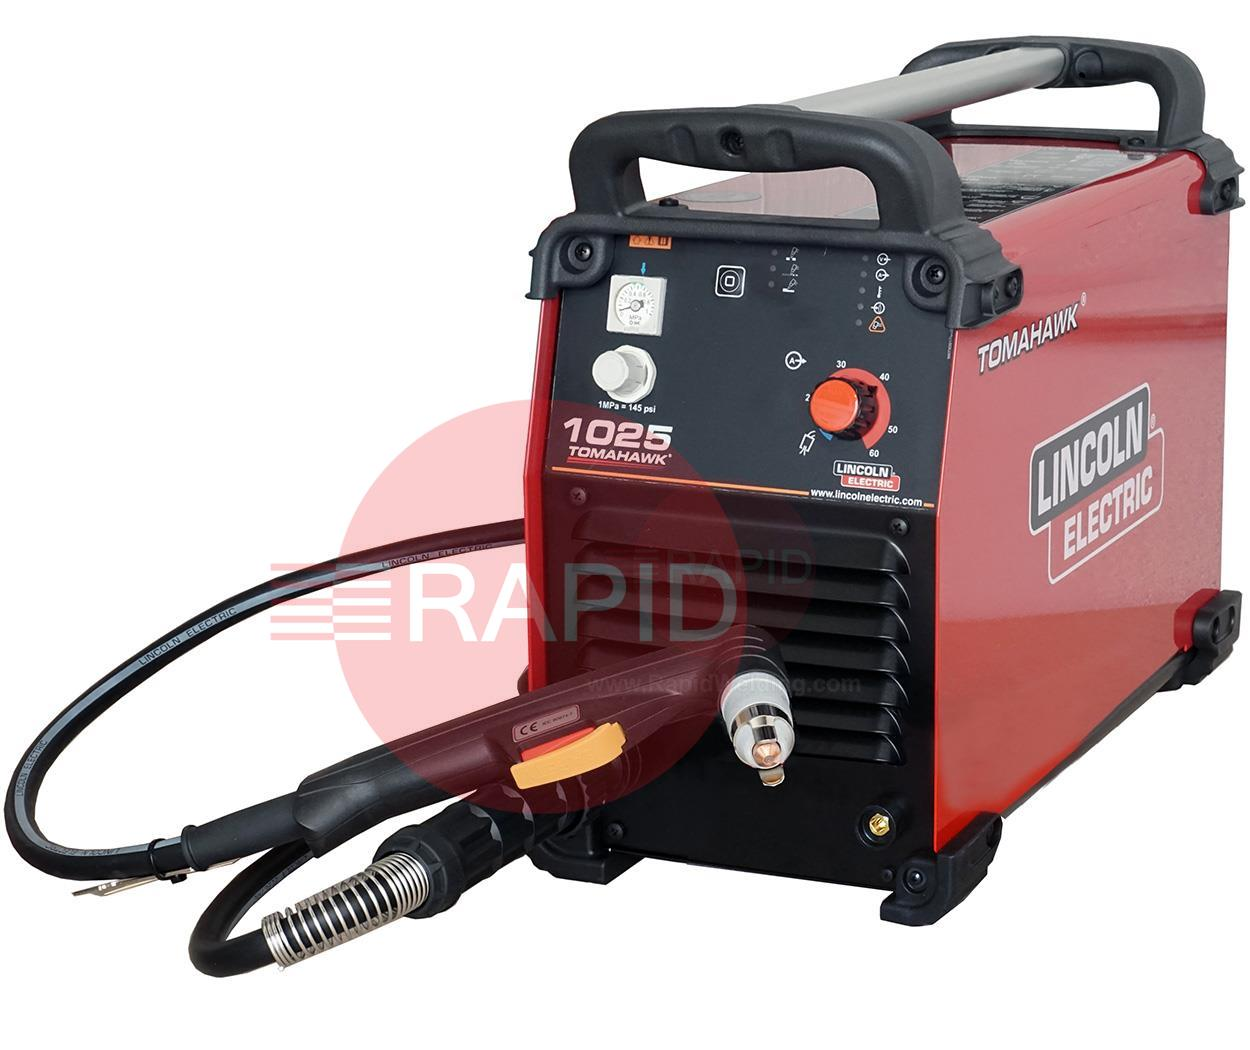 K12048-1  Lincoln Electric Tomahawk 1025 Plasma Cutter With 7.5M LC65 Hand Torch 400v 3ph 25mm Cut